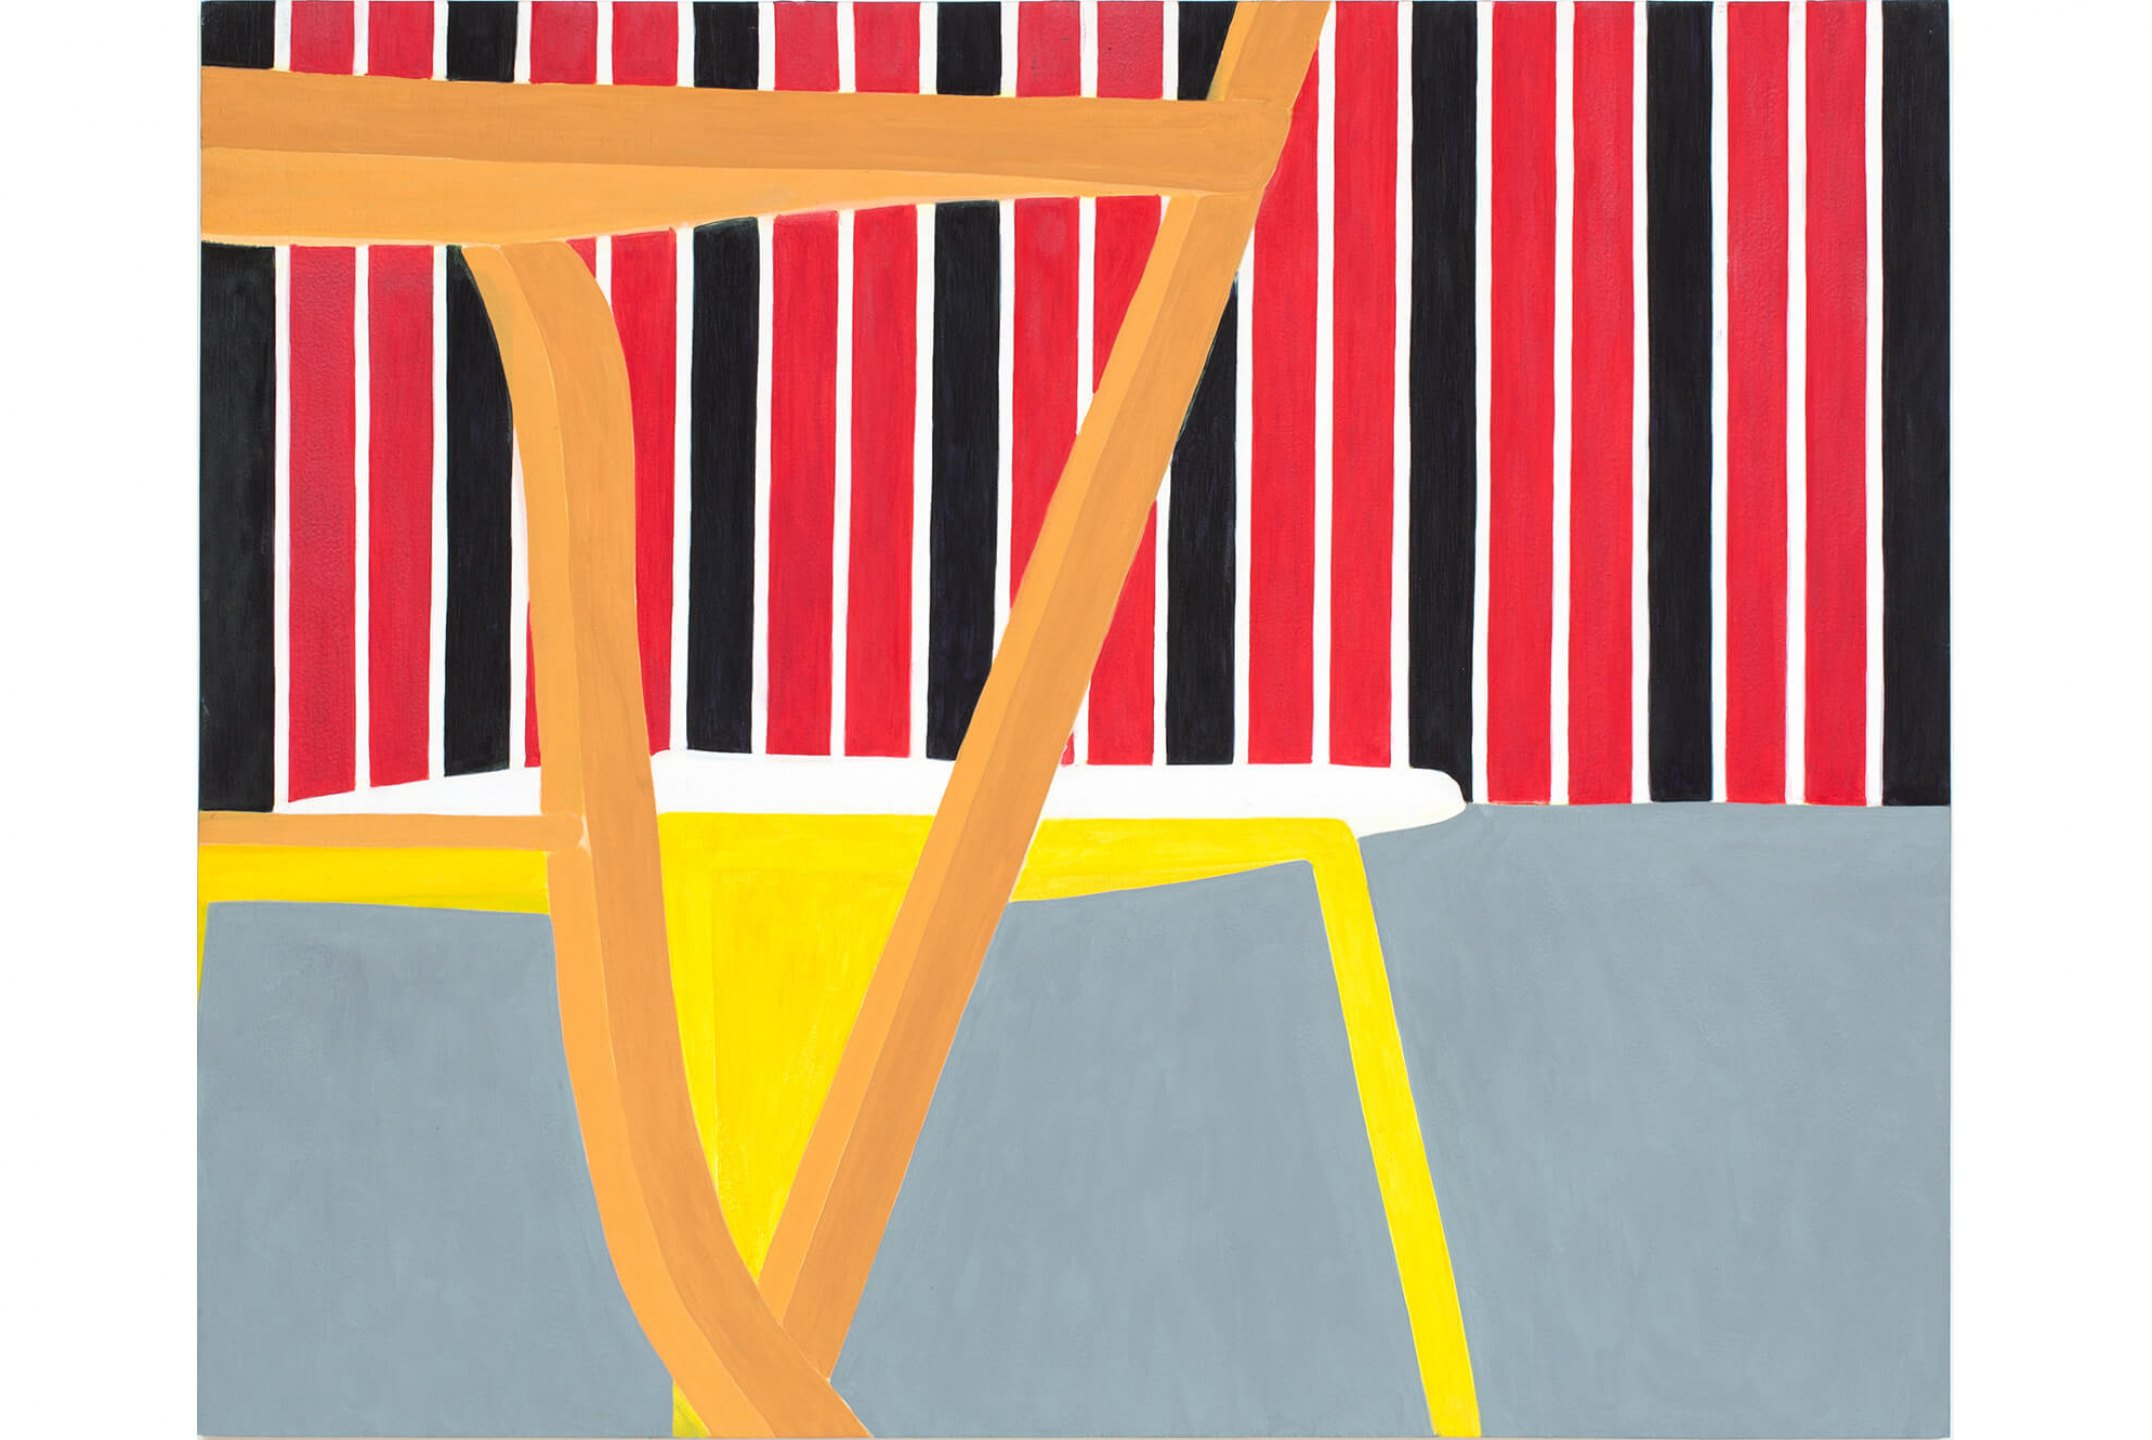 Patricia Leite, <em>Beira-Serra</em>, 2012, oil on wood, 90 × 110 cm - Mendes Wood DM